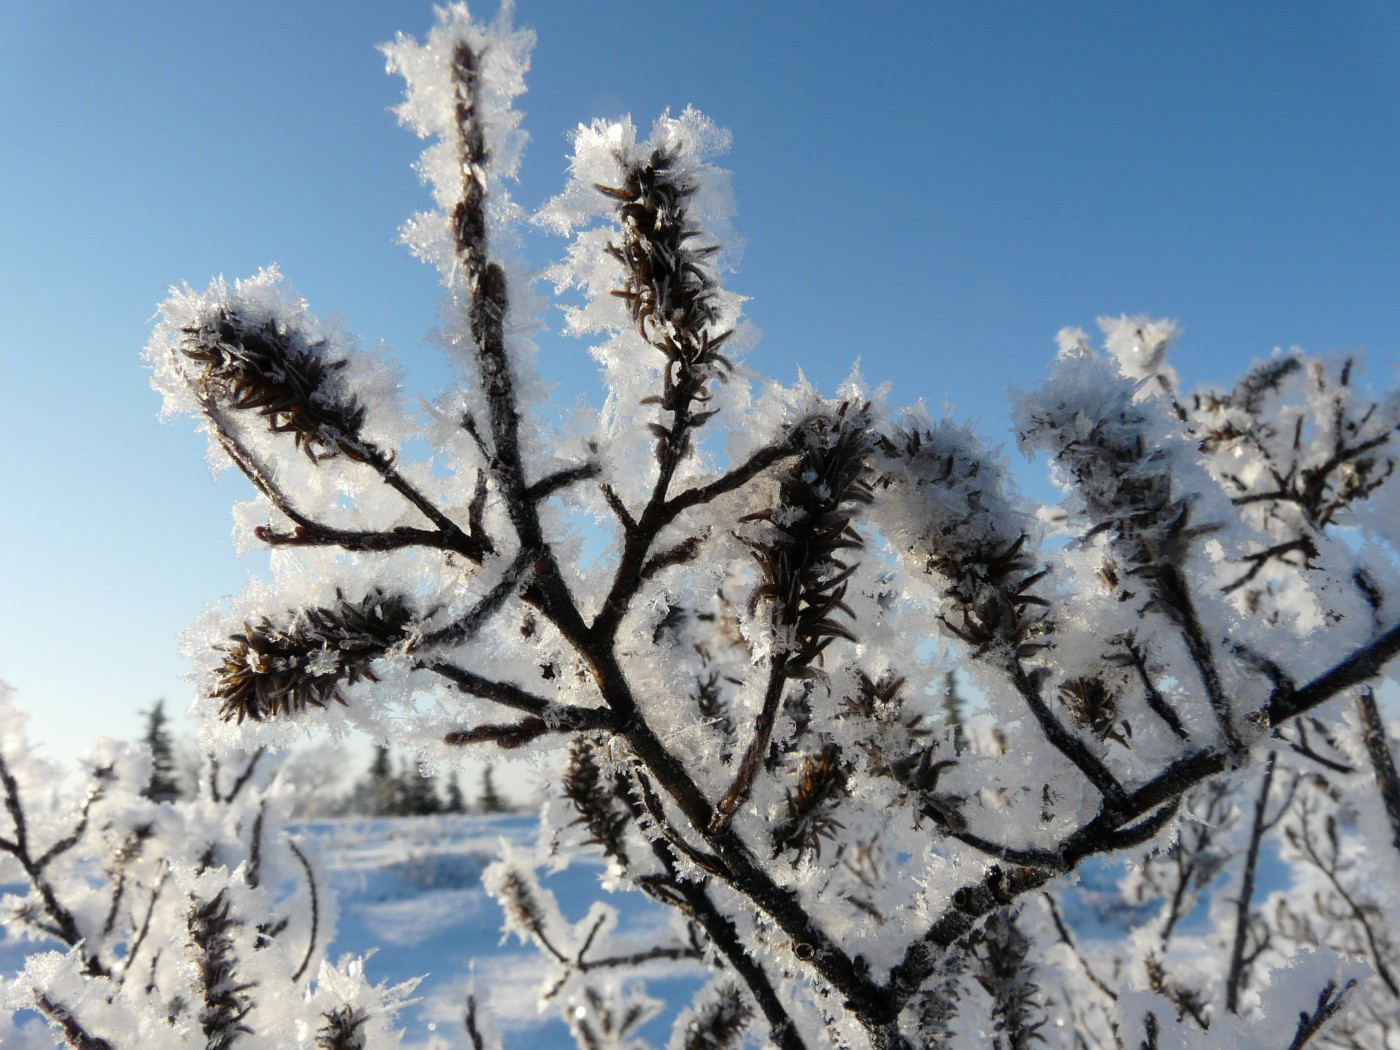 A willow shrub is covered in ice, sparkling on a sunny day.